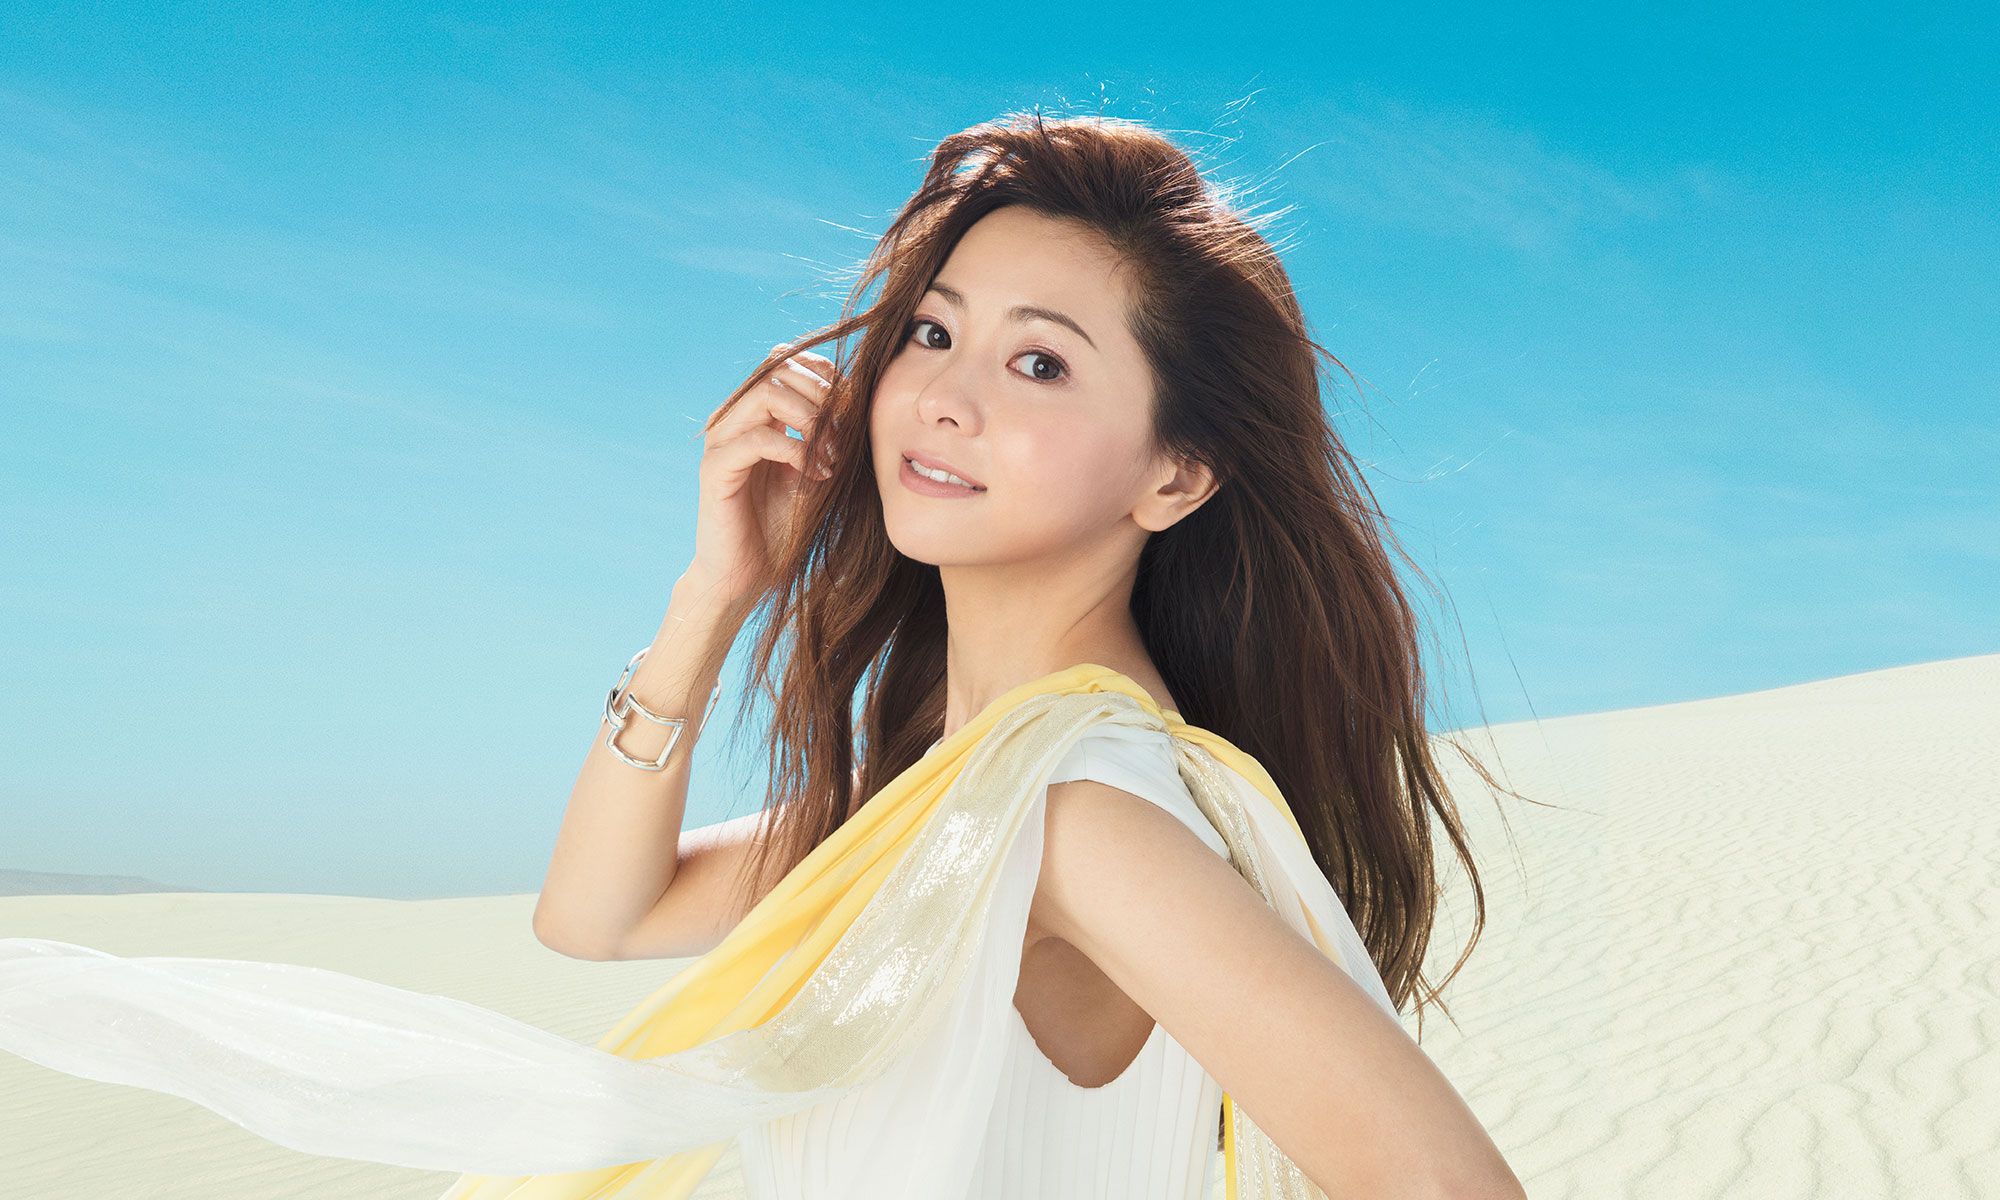 Mai Kuraki 倉木麻衣 Official Website